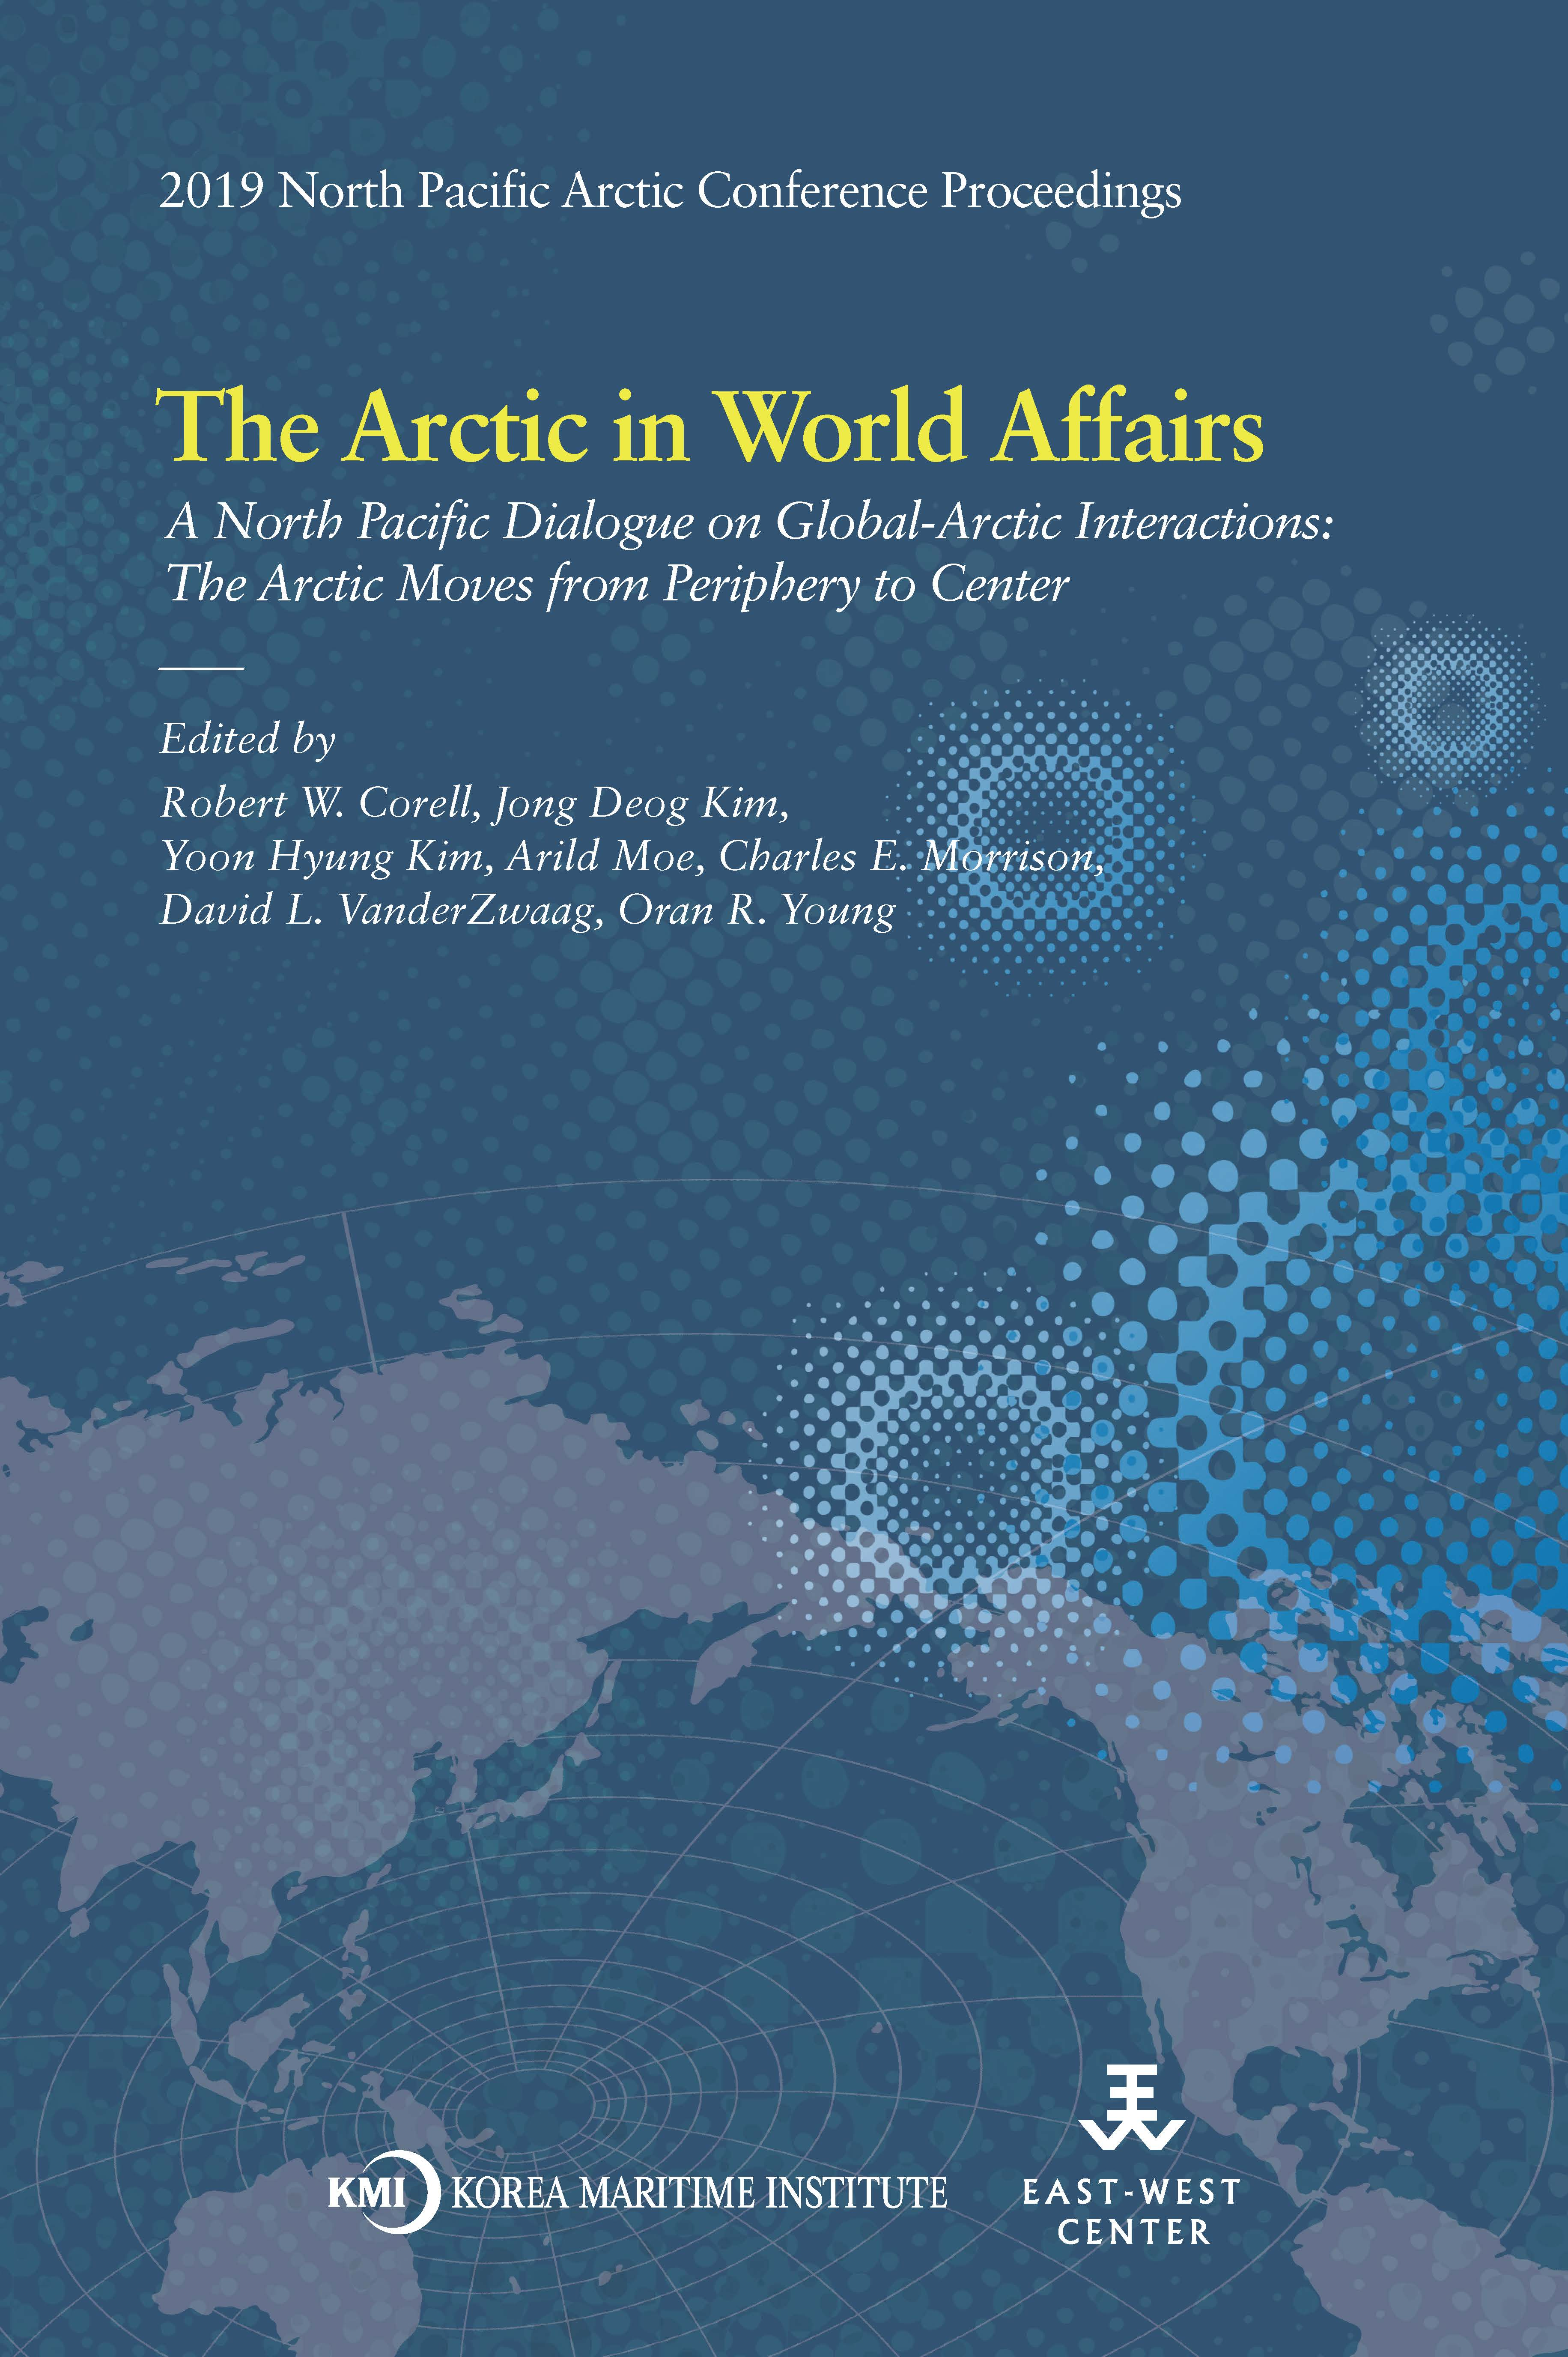 2019 North Pacific Arctic Conference Proceeding 표지